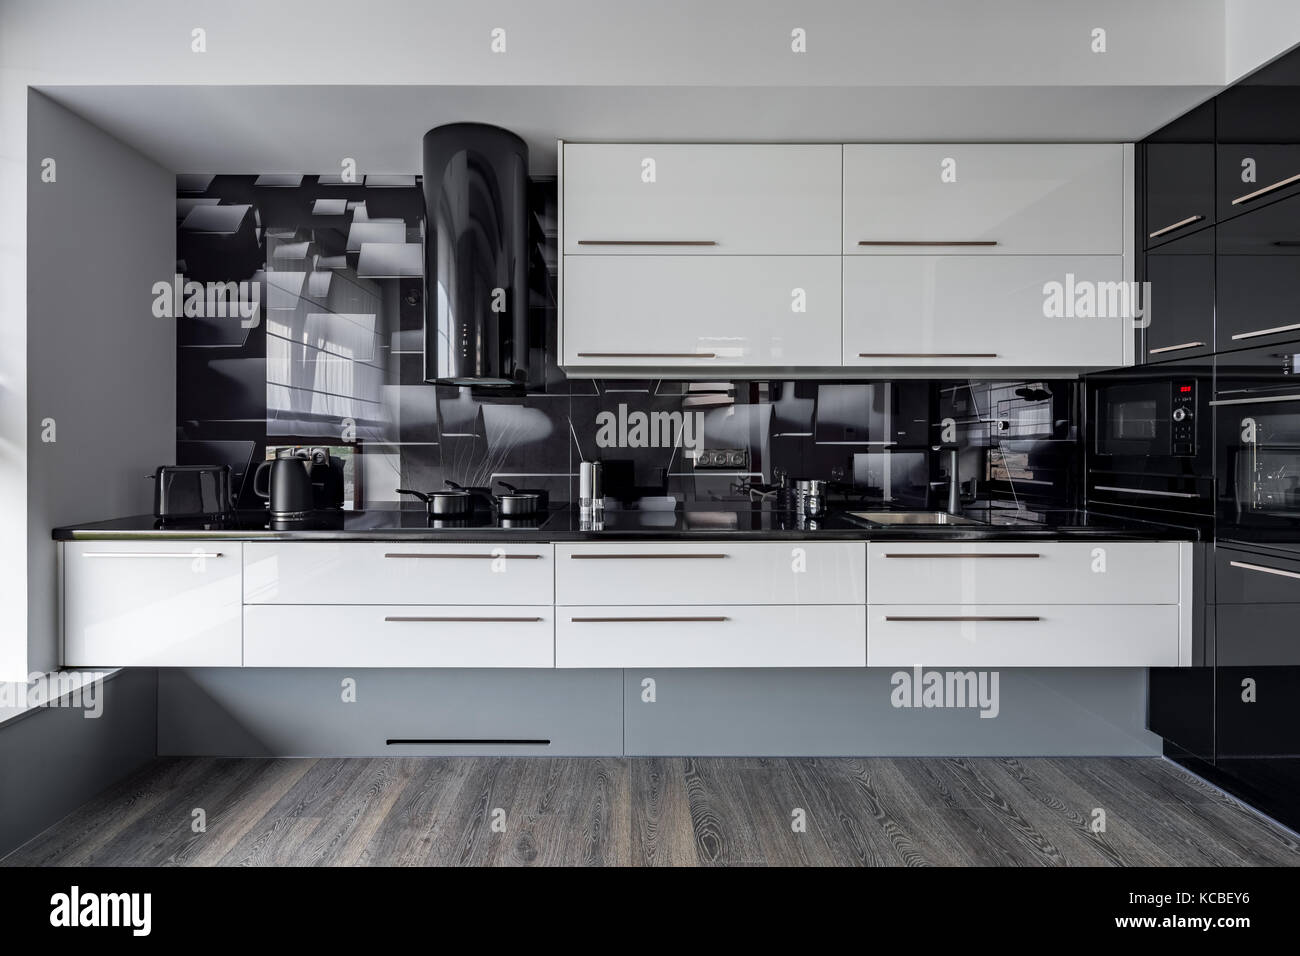 Modern Kitchen With White Cupboards And Black Wall Tiles